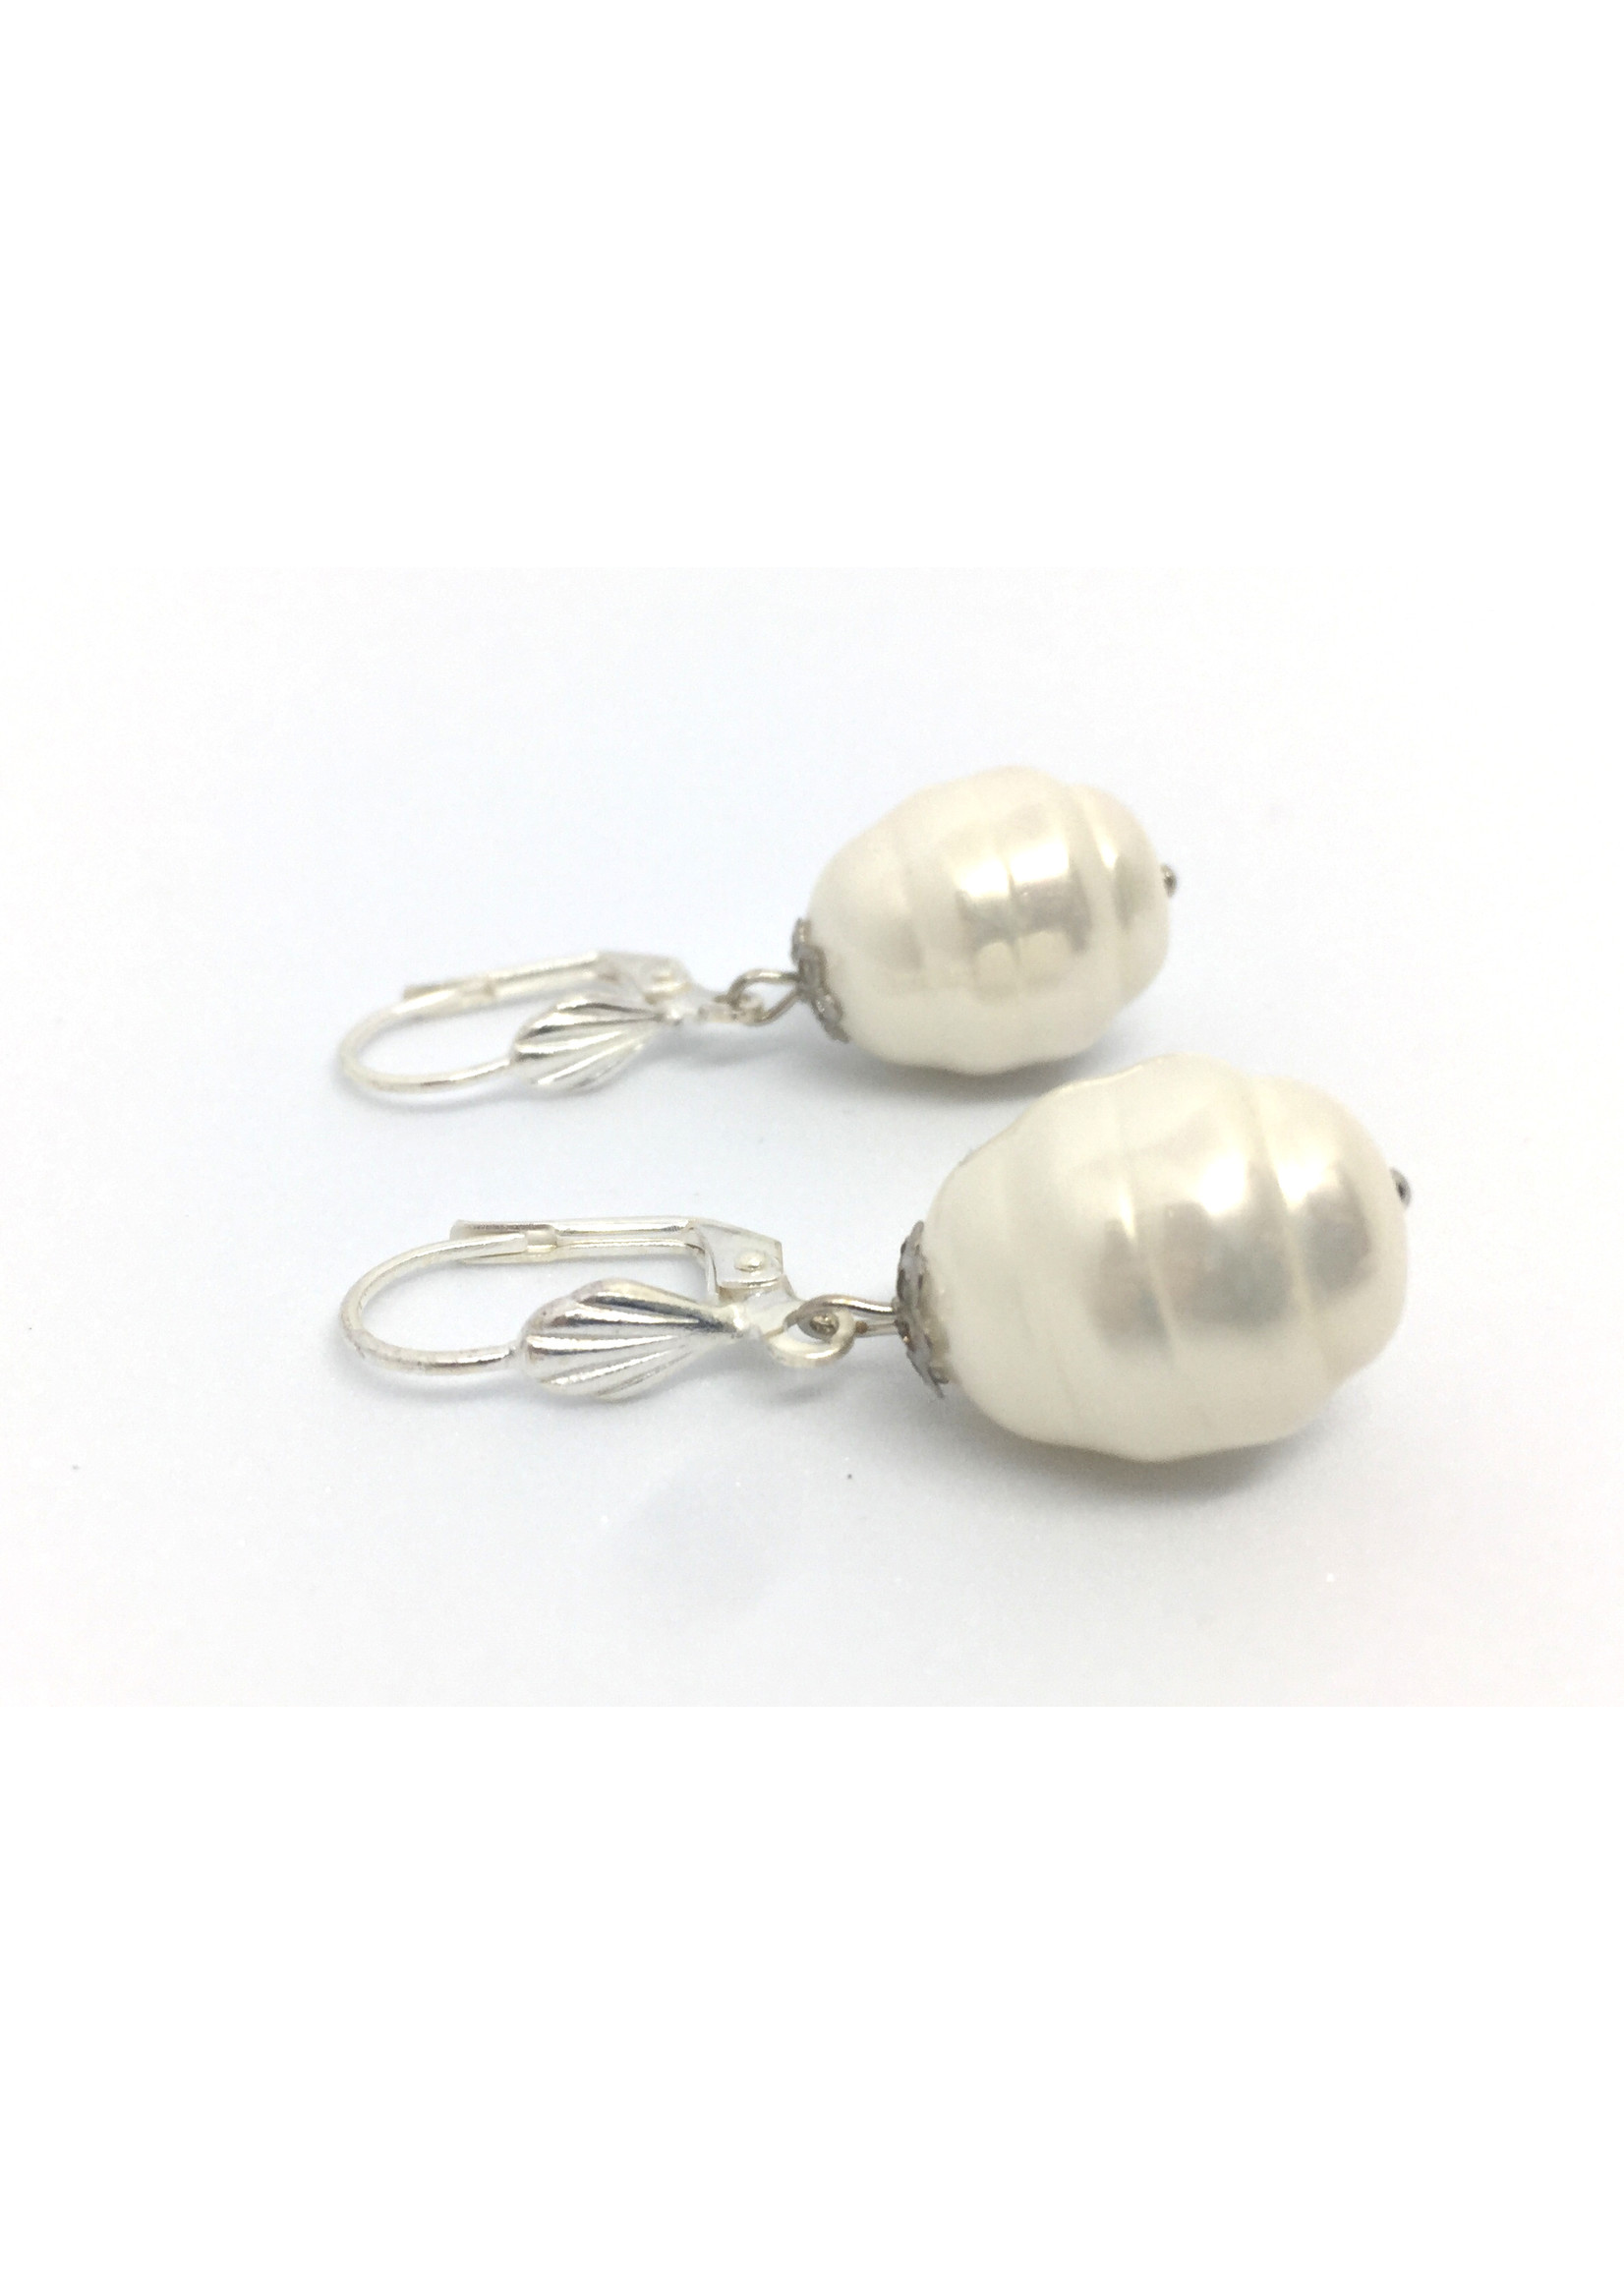 Silver plated earrings from Els de Ruyter with Shell pearls